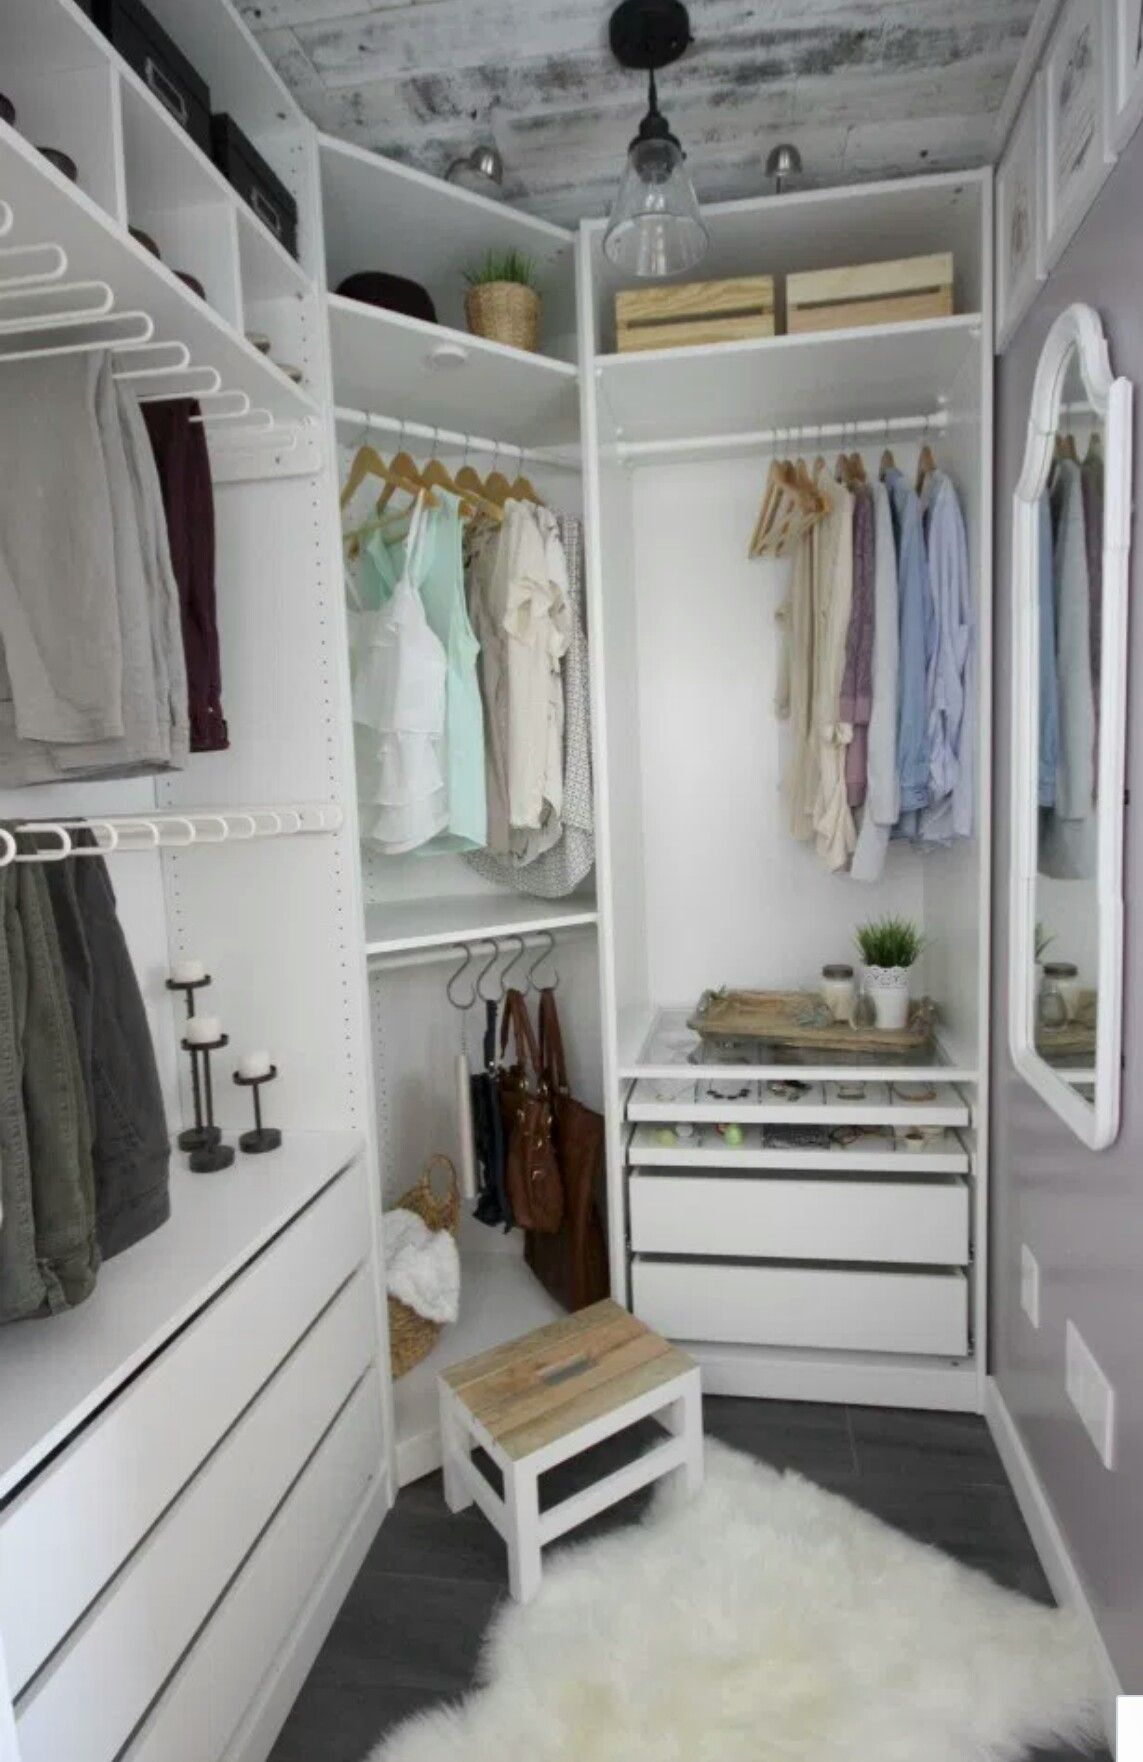 Fitted Wardrobe Design Or Walku003din Closets Design   Reach In Closet Ideas  Decoholic.com. In A Bedroom, We Often Crave For Storage To Keep Some Stuff  But We ...